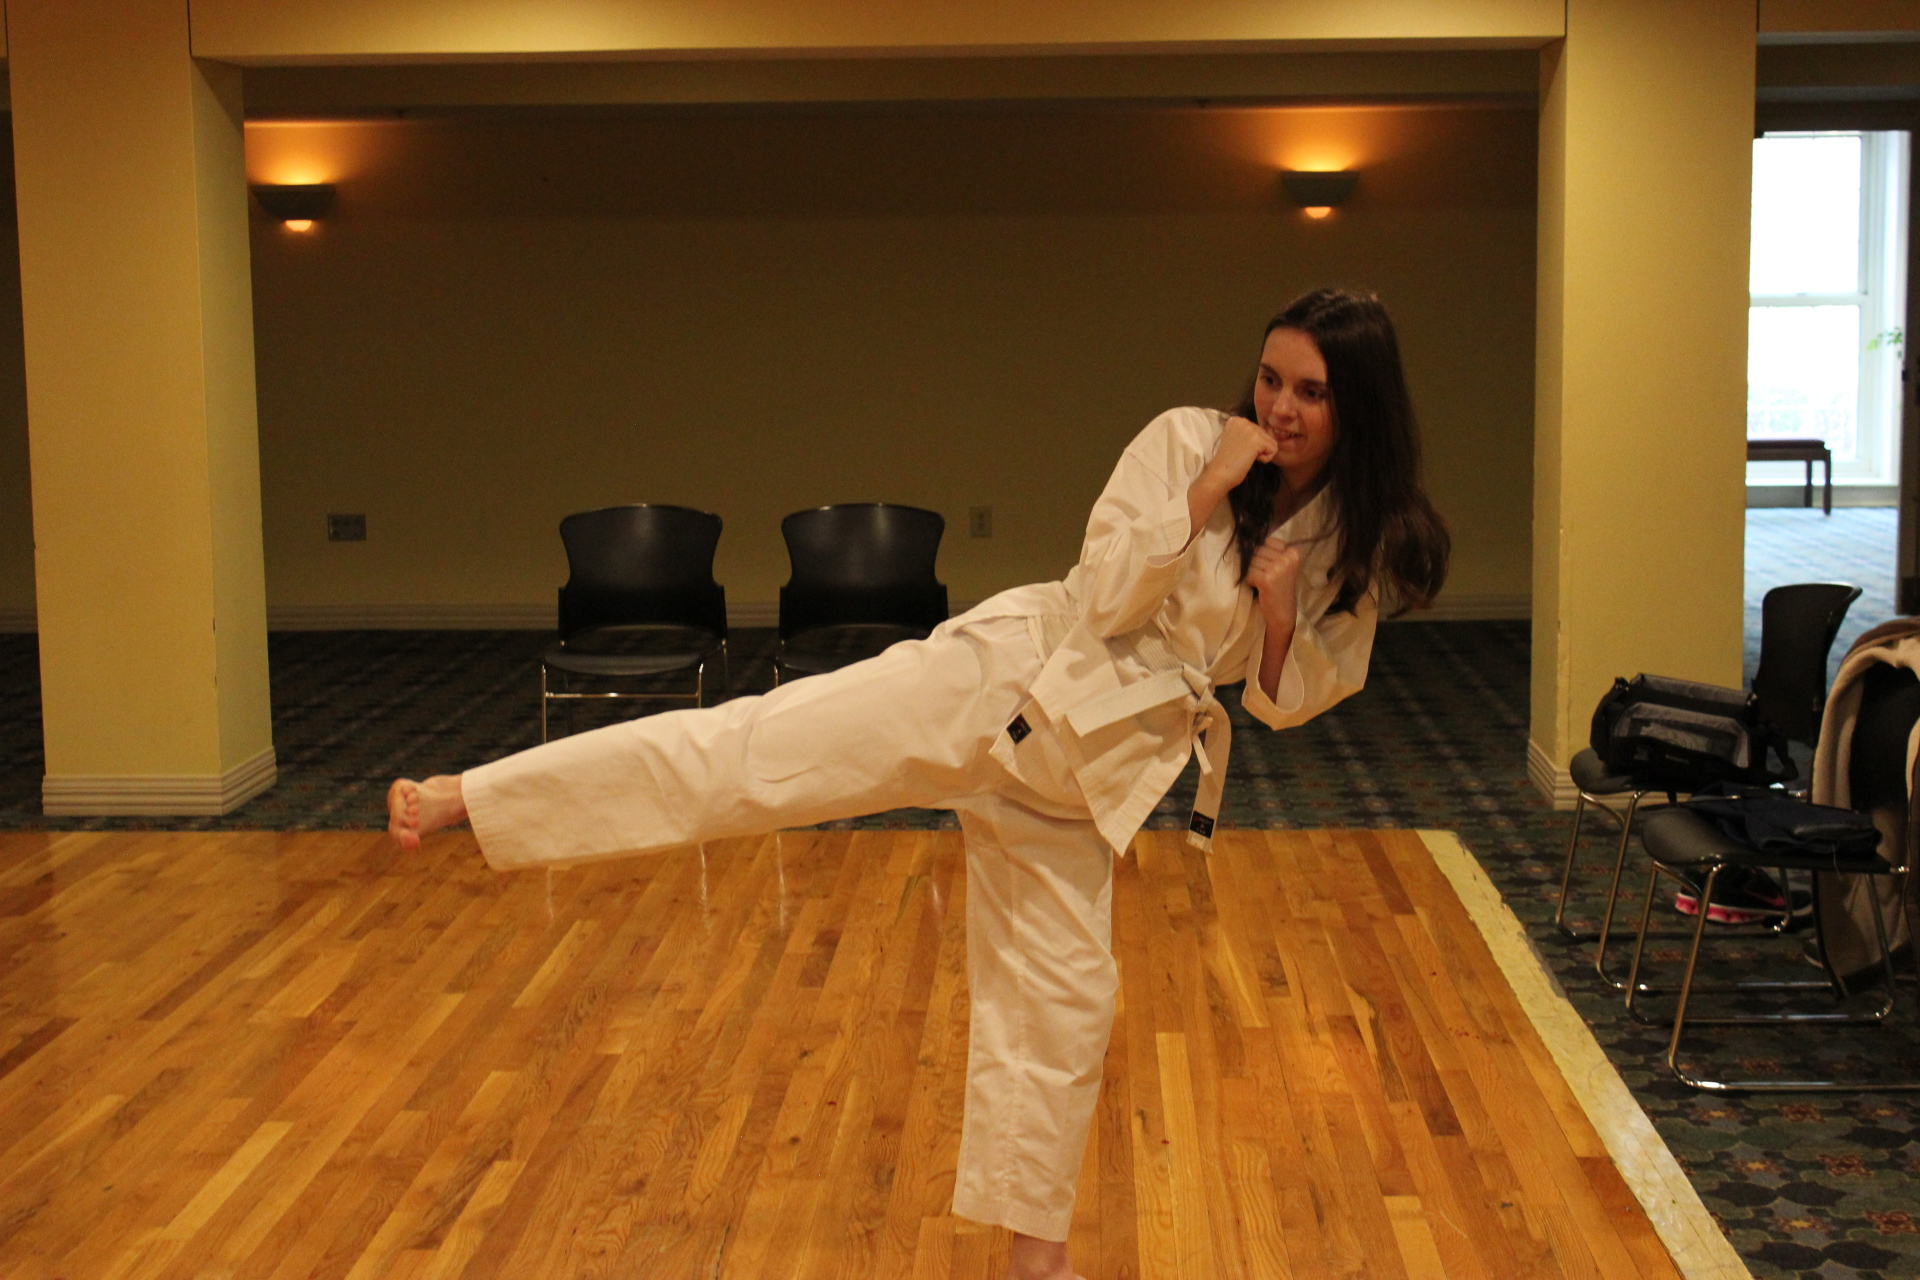 Self-defense for kids and adults